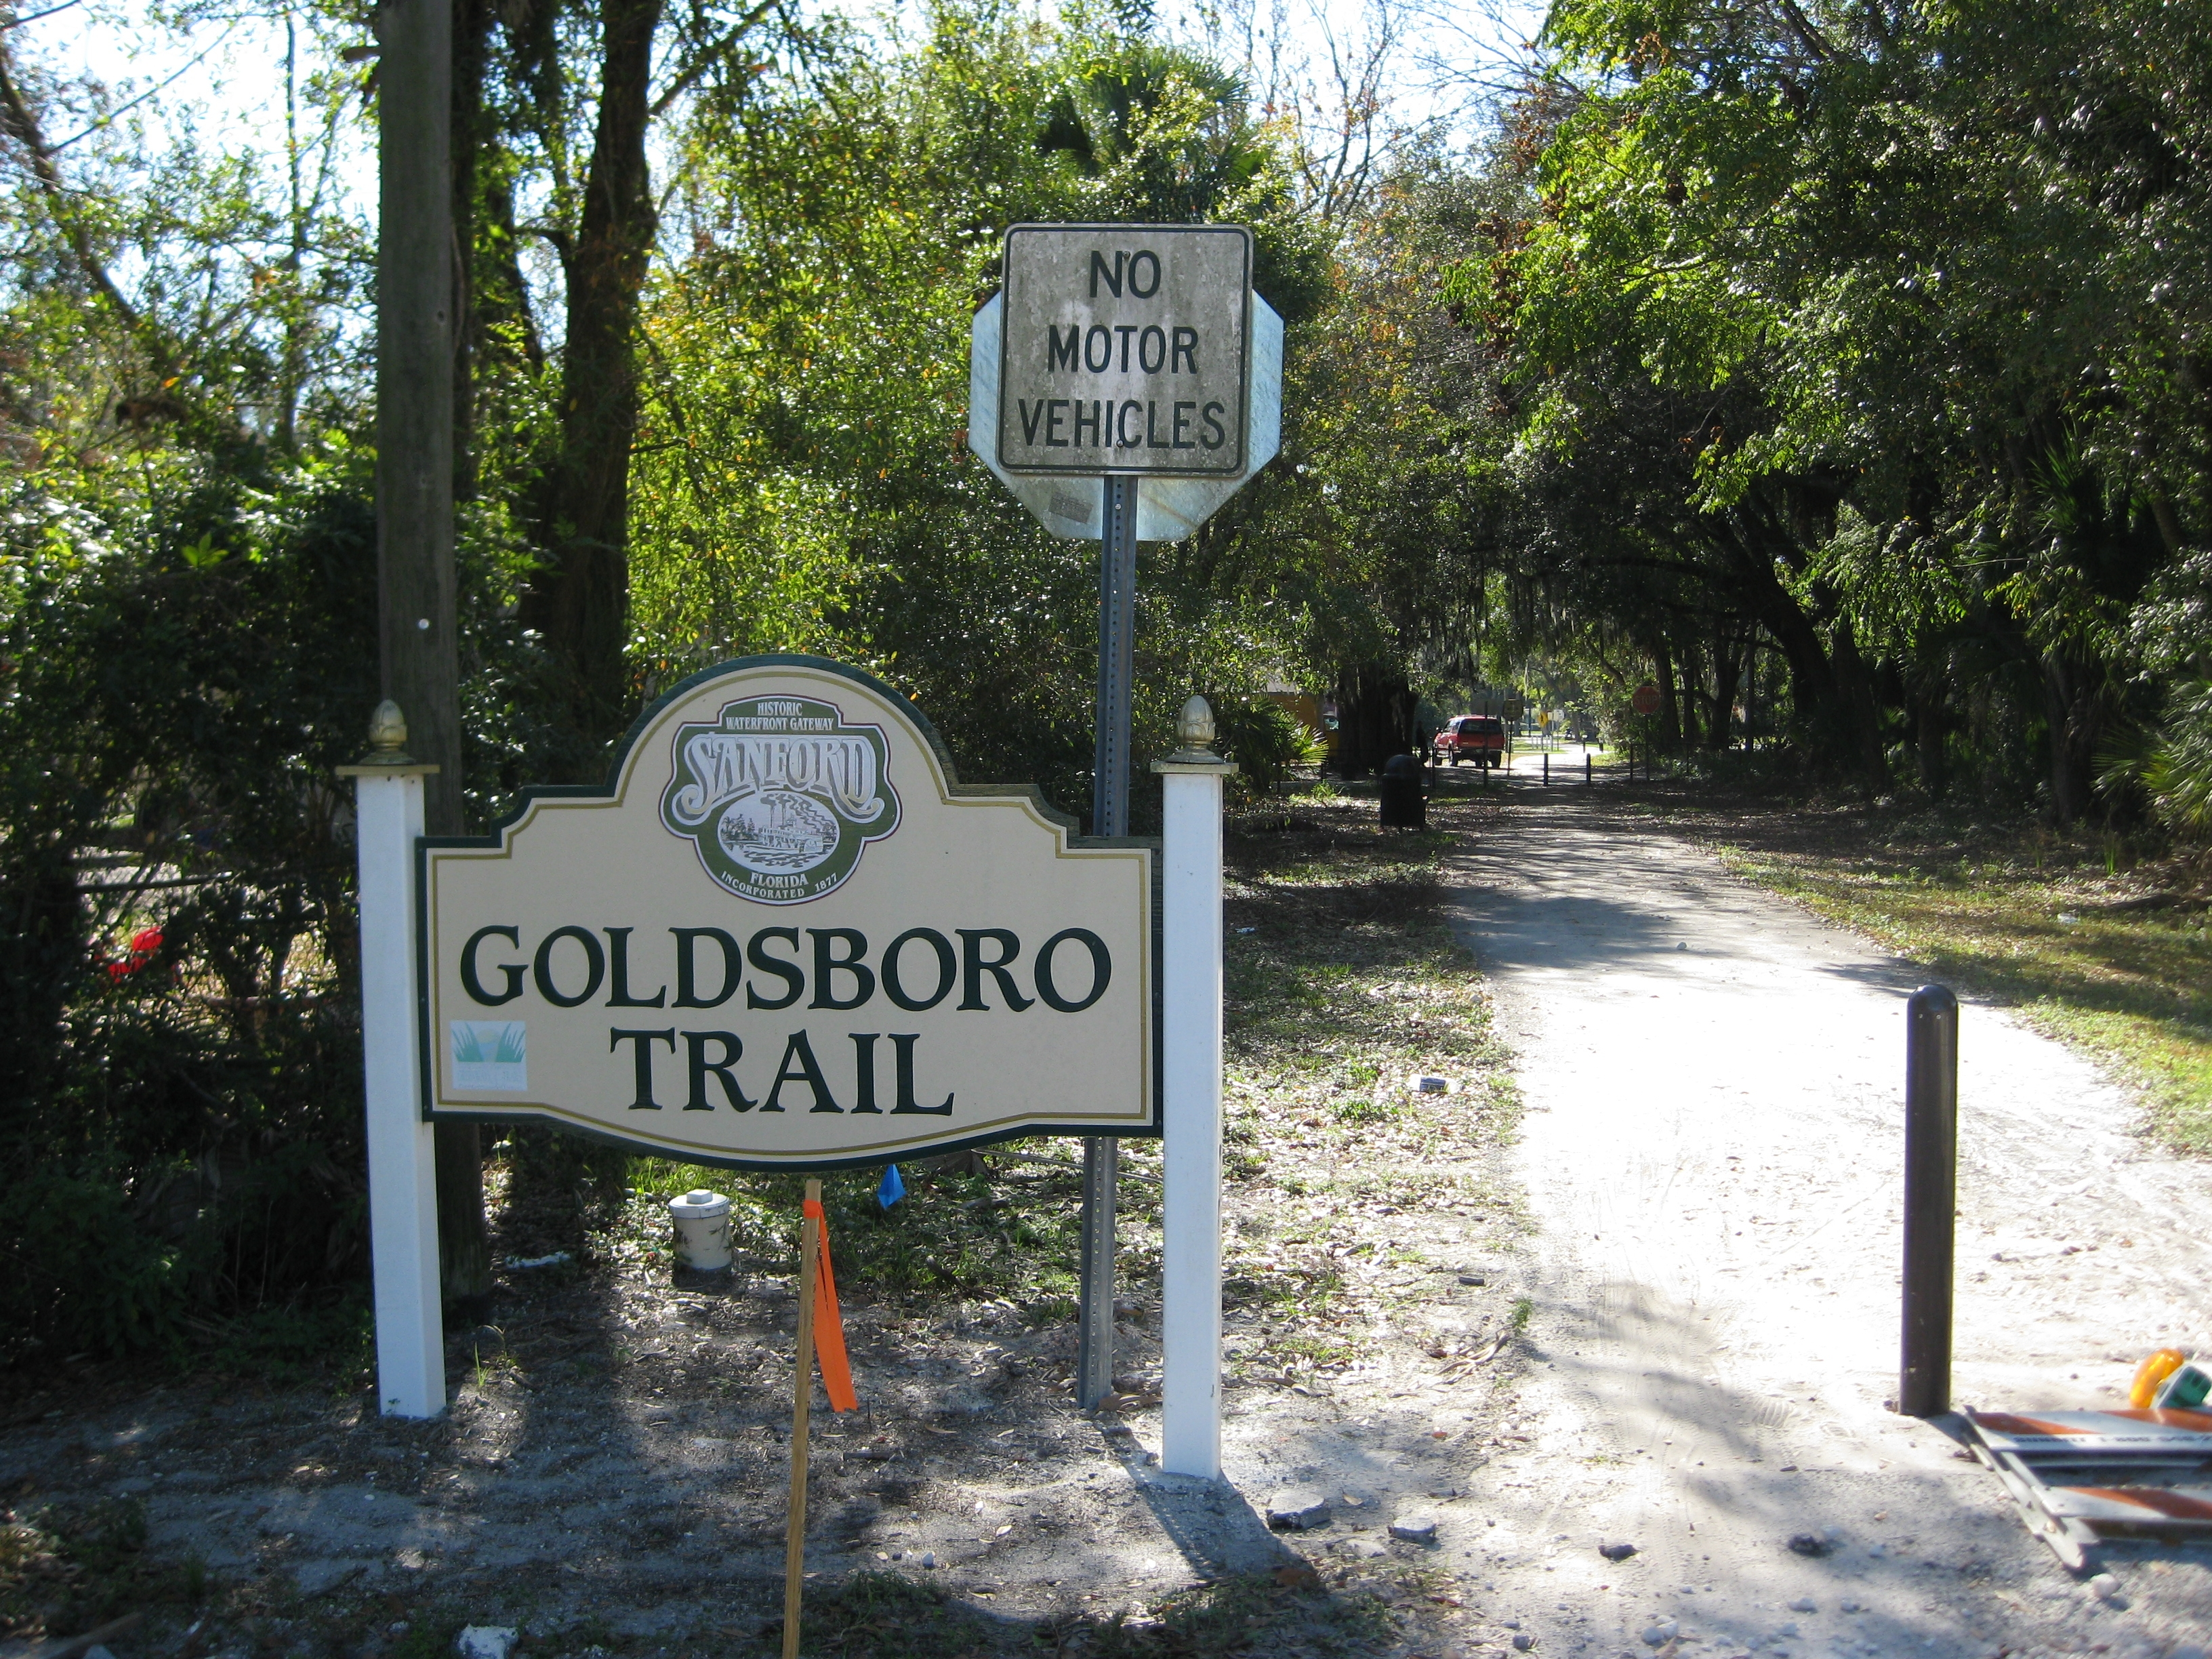 Goldsboro Trail